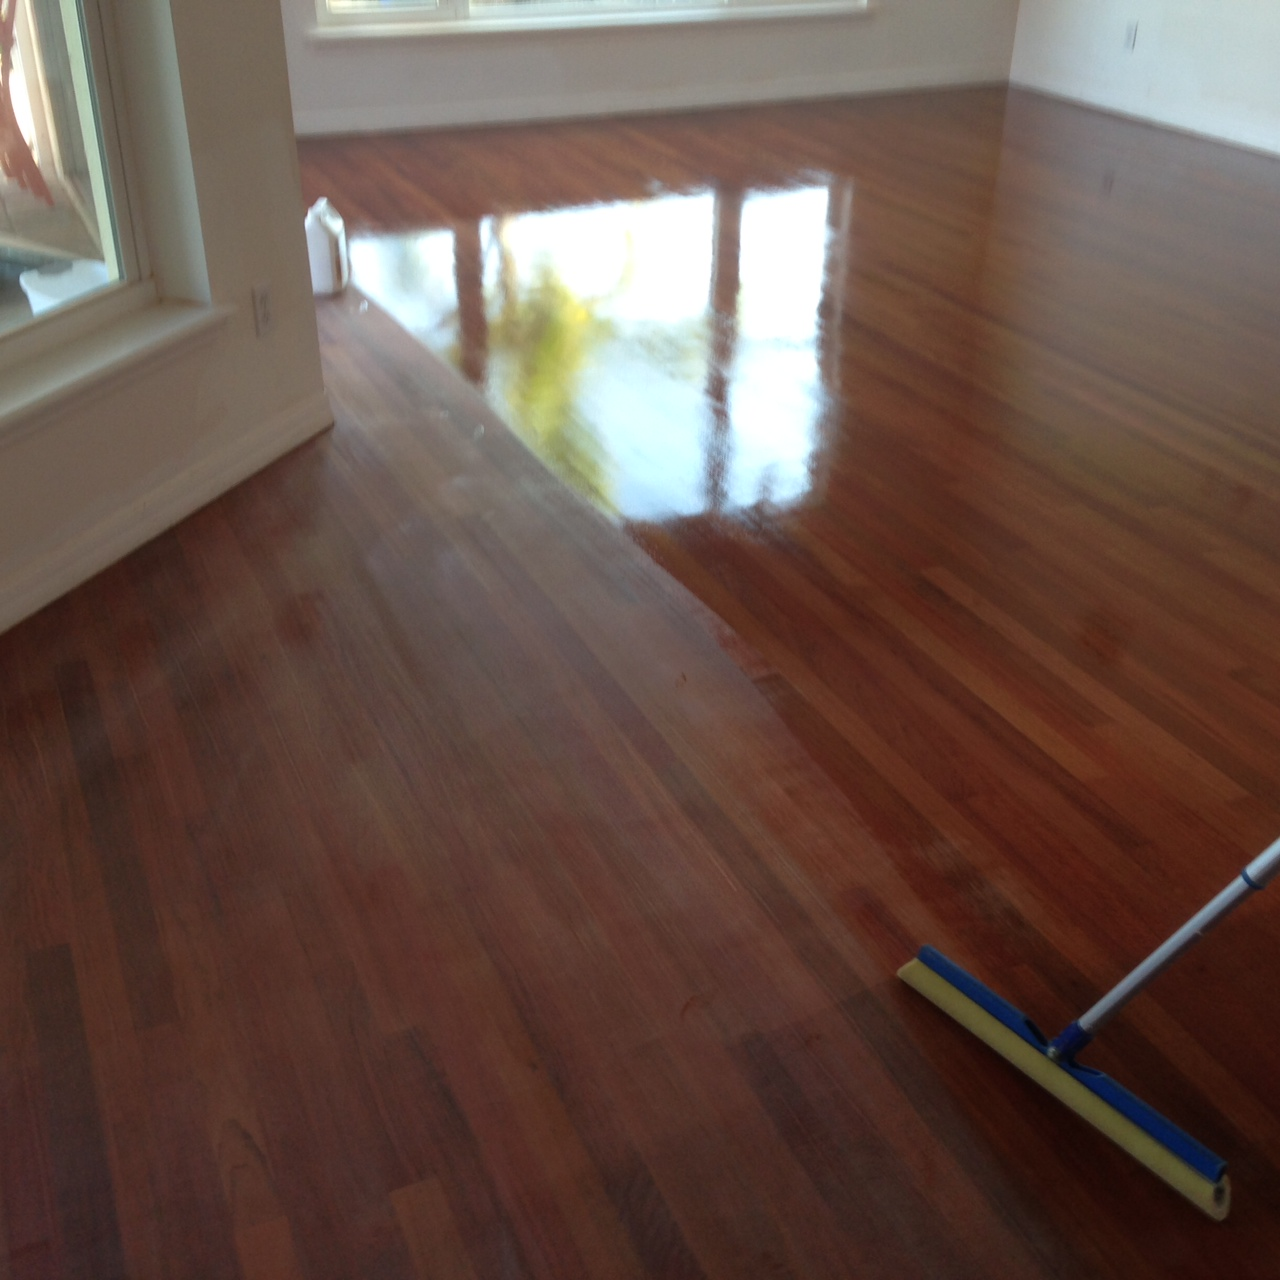 Brazilian Cherry Wood Floor getting Bona Polyurethane coating after  screening. - Brazilian Cherry Wood Floor Refinishing In St. Augustine, FL